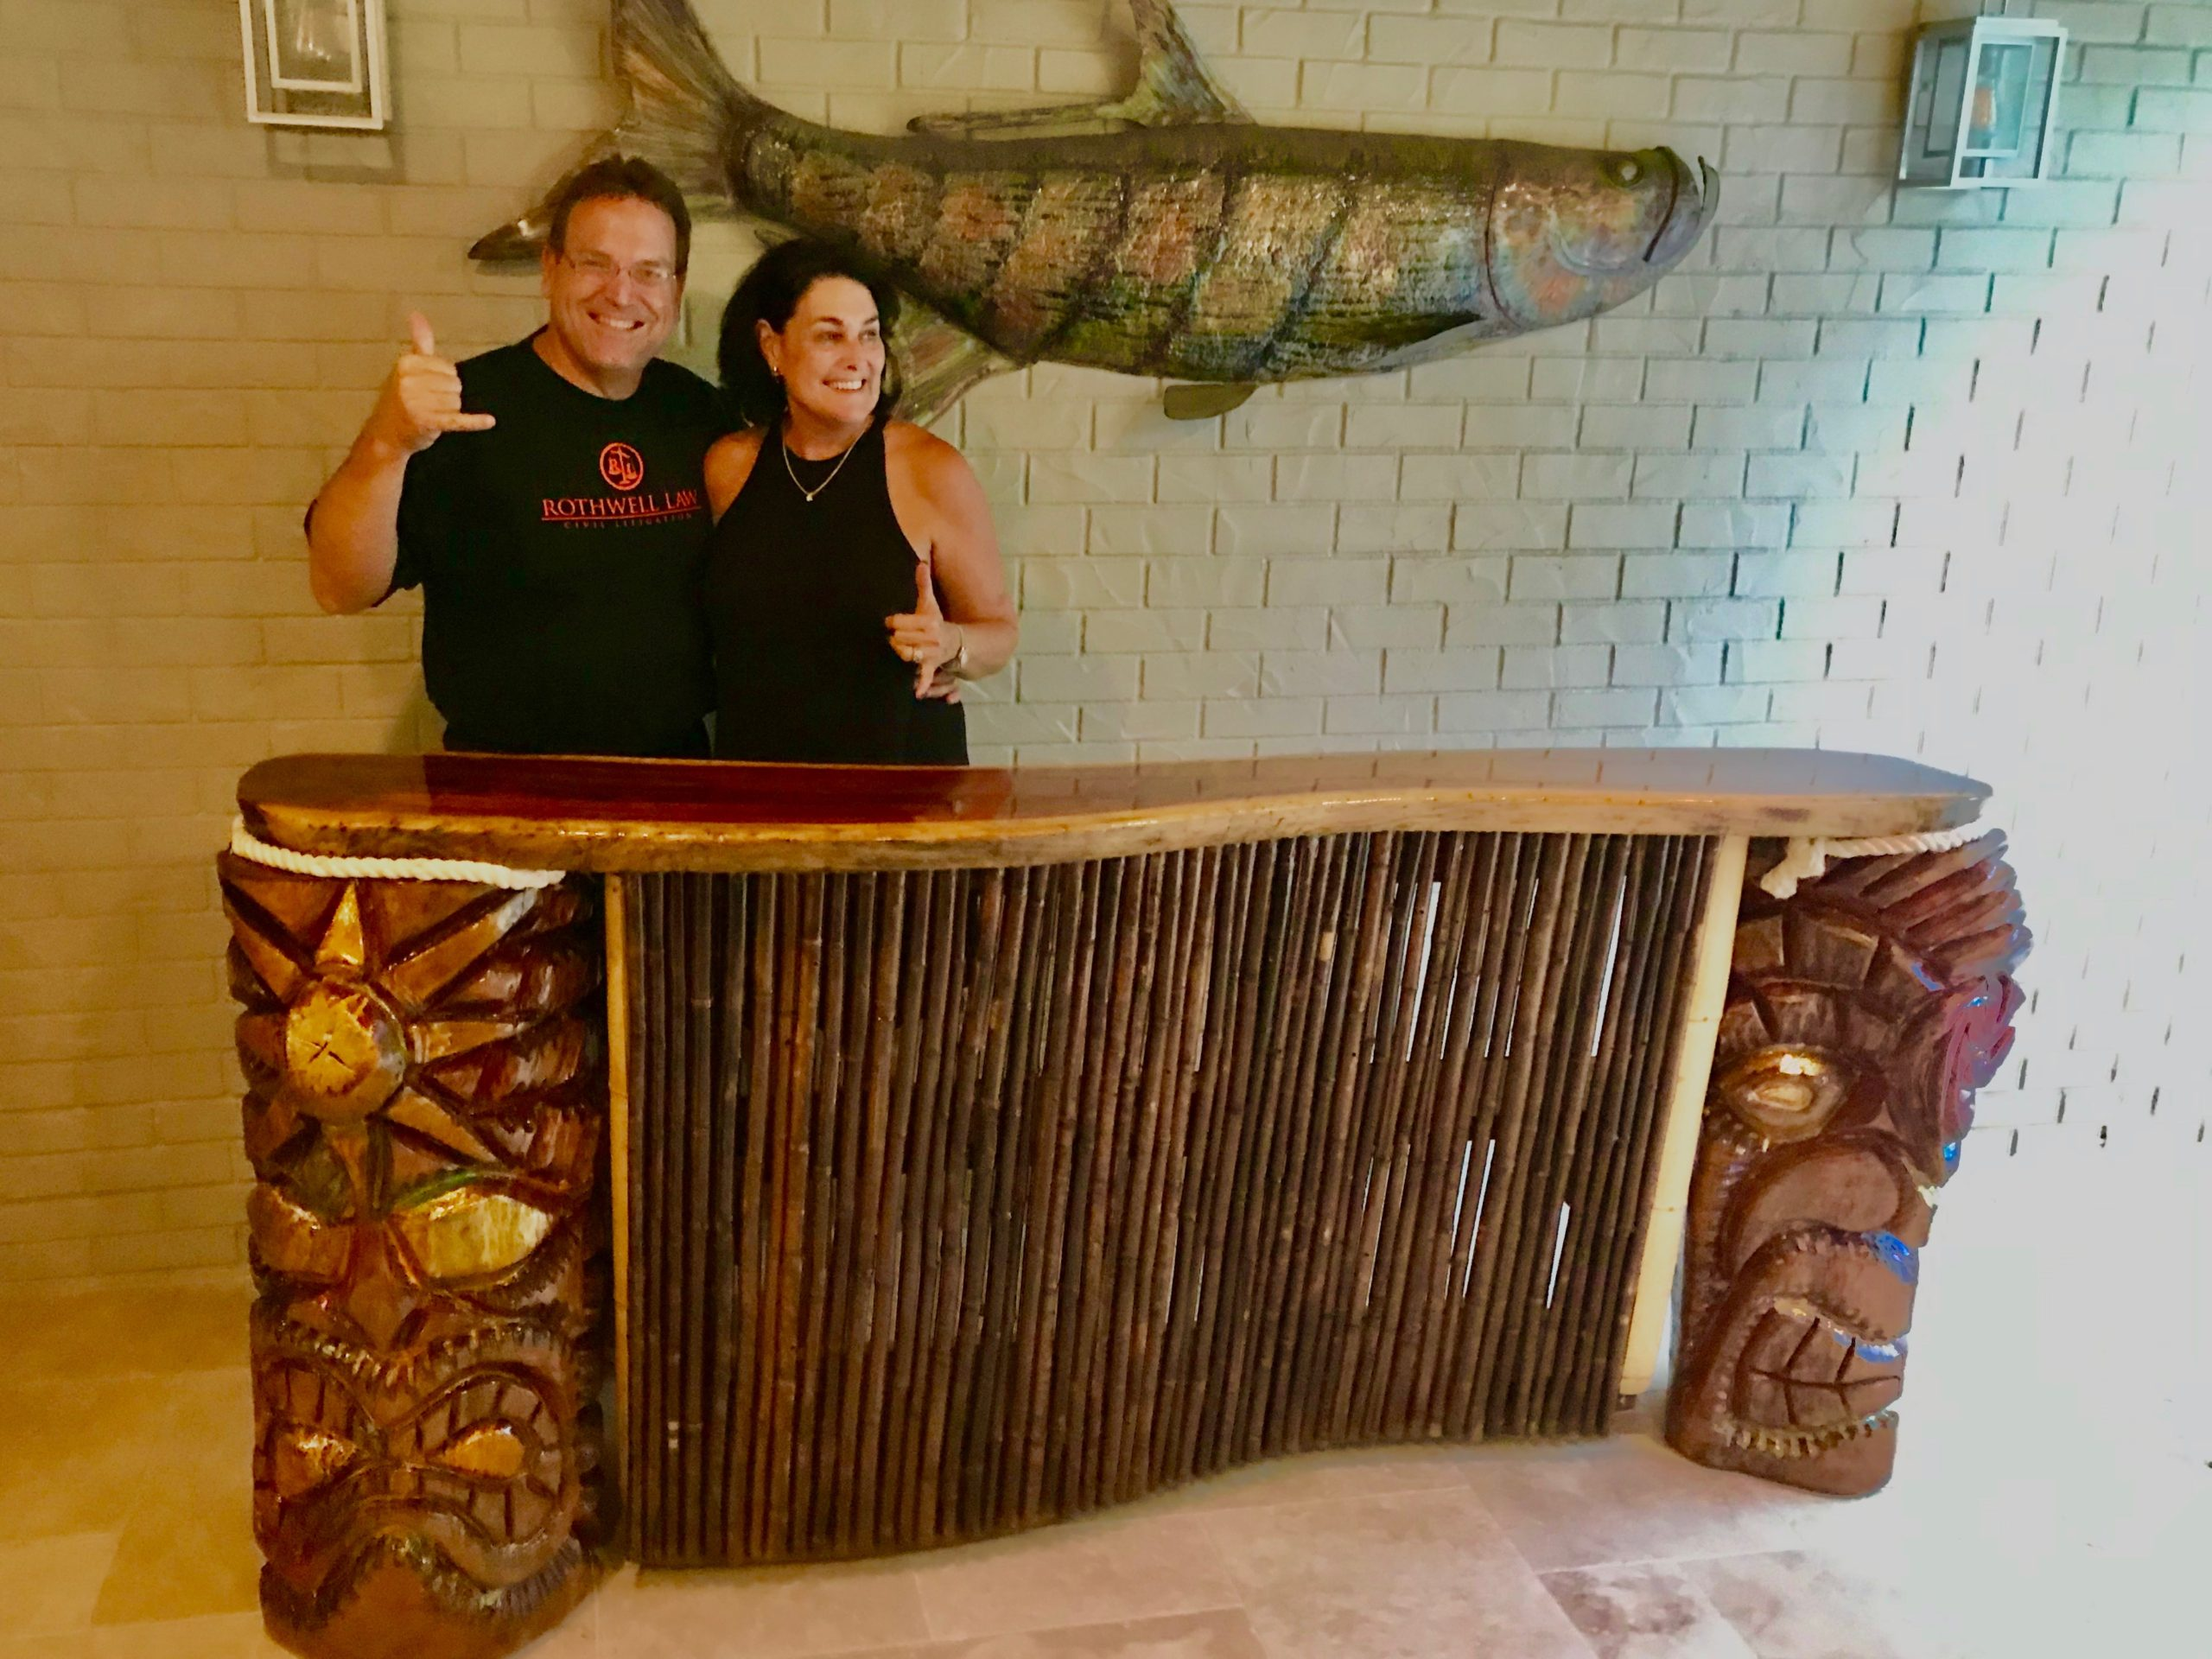 Jeff and Lauren Rothwell from old Northeast are decking out their new custom one-of-a-kind Tiki bar.